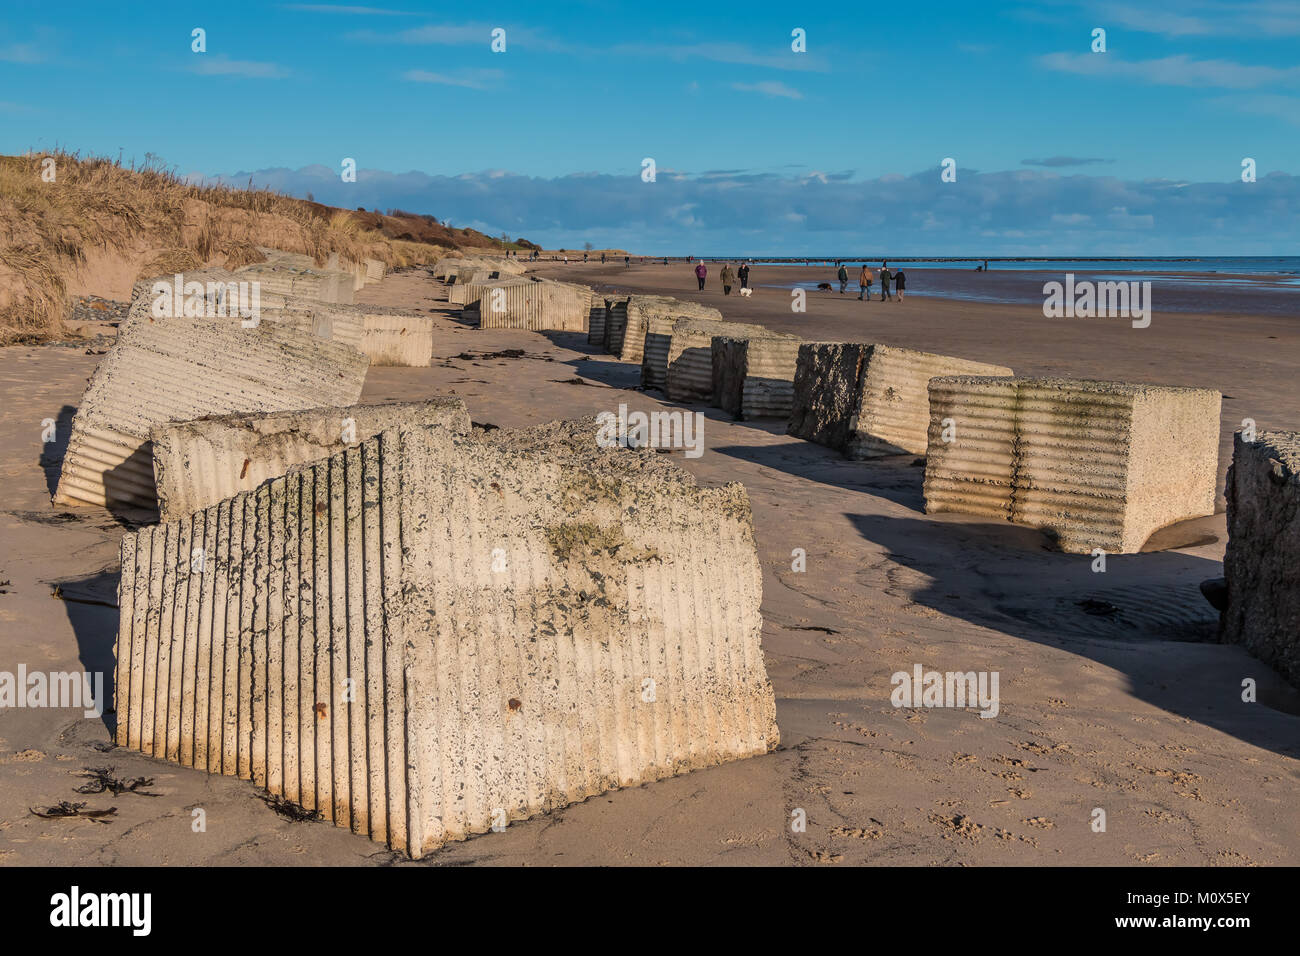 World War II beach defence obstacles at Alnmouth, Northumberland, UK, with copy space - Stock Image